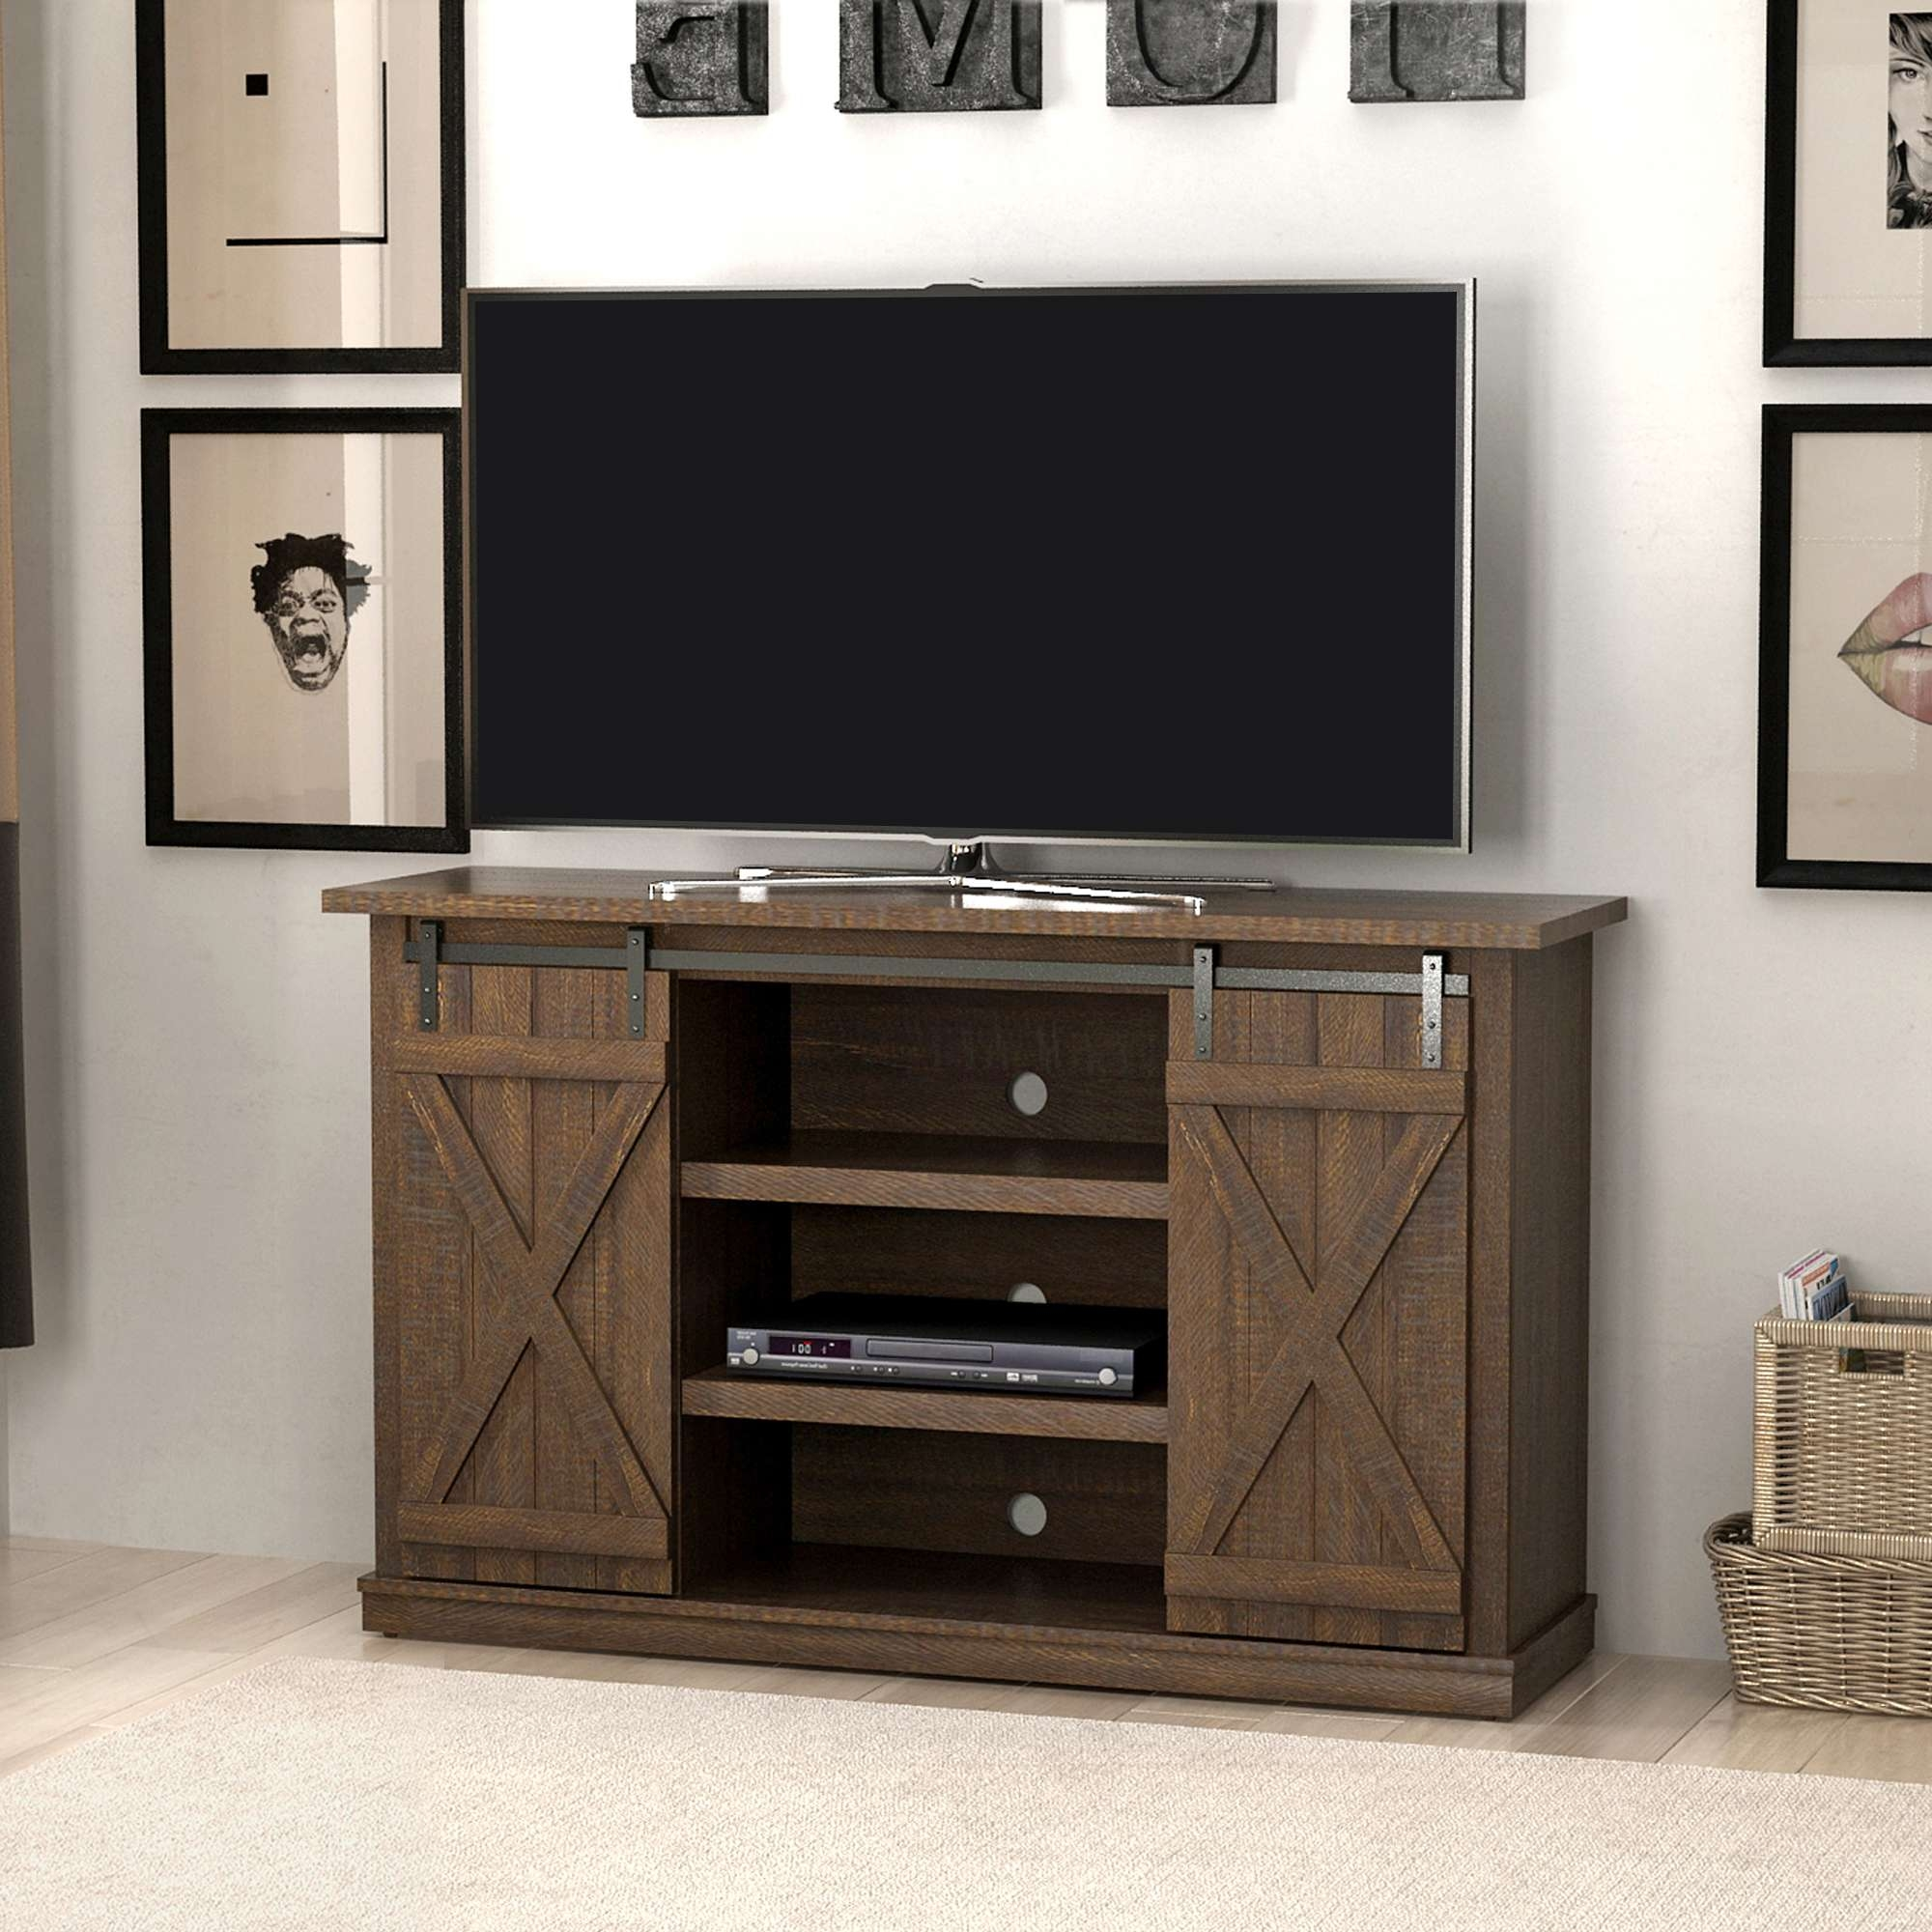 Tv Stands – Walmart With Regard To 61 Inch Tv Stands (View 13 of 15)